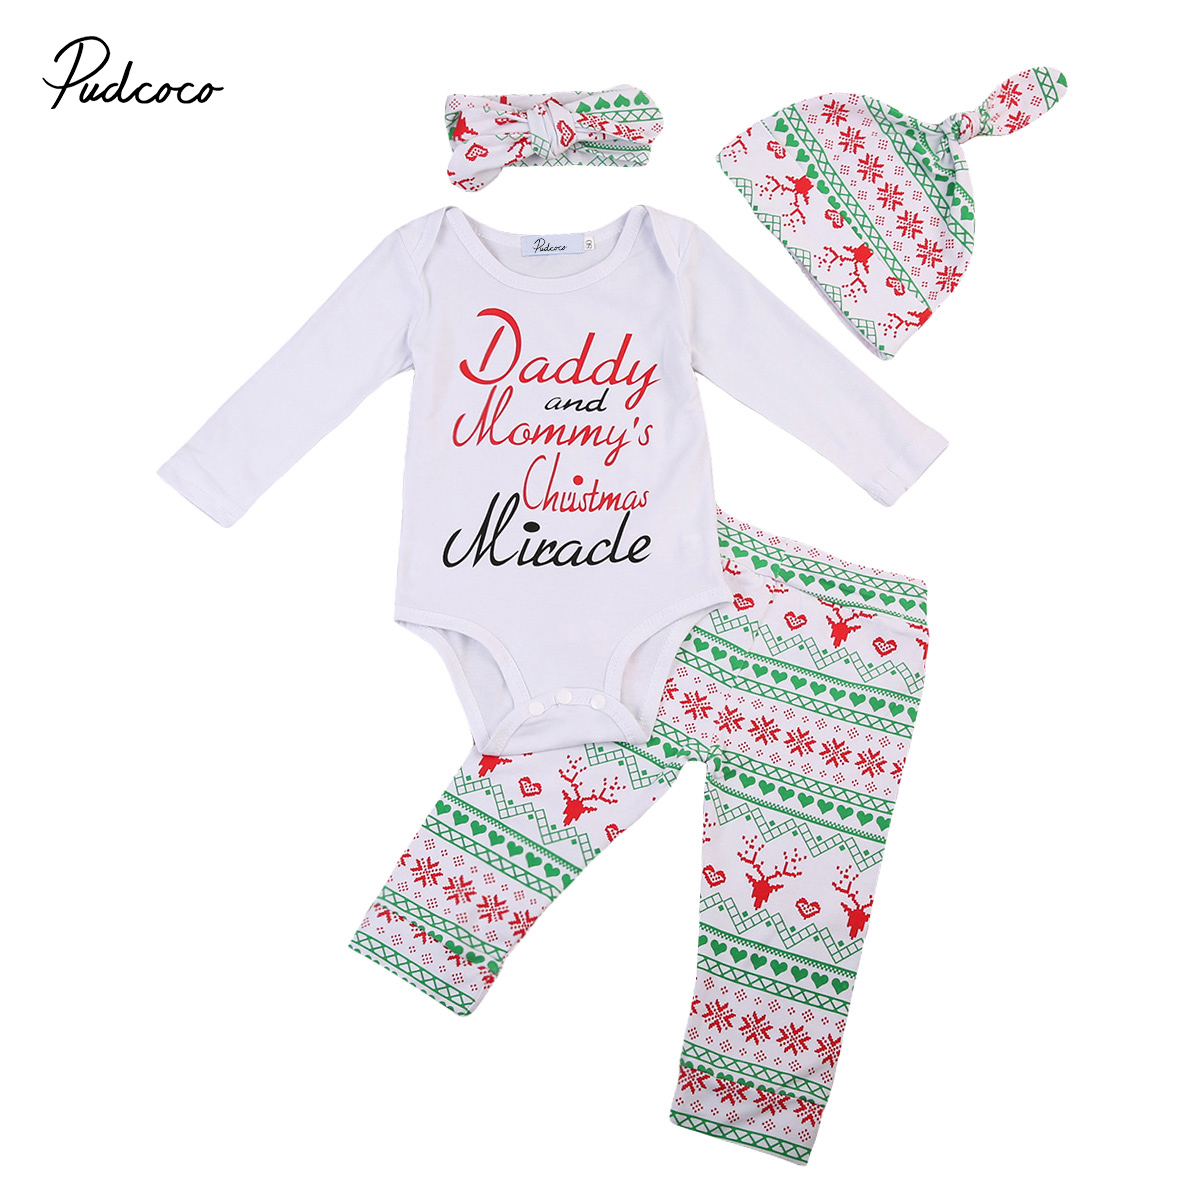 2017 Christmas Newborn Toddler Baby Boys Girls Winter Clothes Long Sleeve Romper Bodysuit+Pants Outfits Set 4Pcs Hat Handband 0 24m newborn infant baby boy girl clothes set romper bodysuit tops rainbow long pants hat 3pcs toddler winter fall outfits